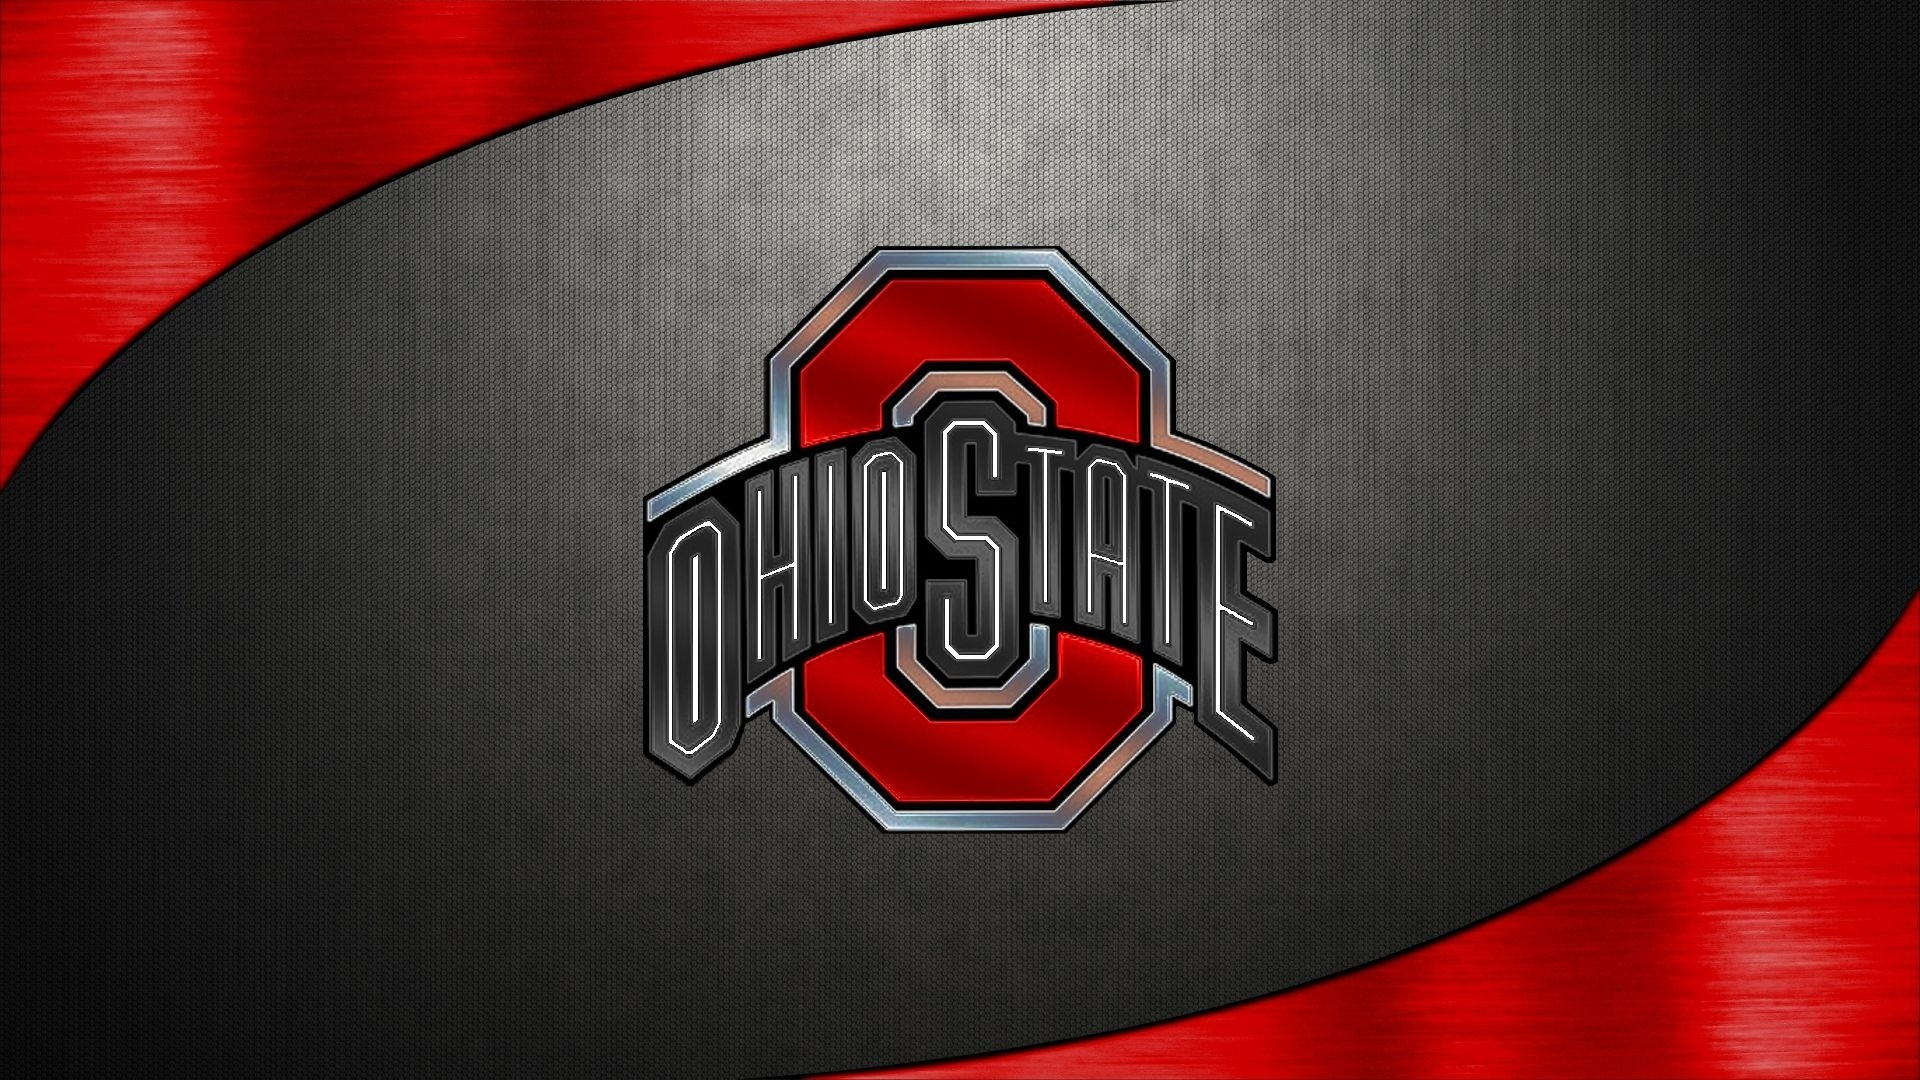 1920x1080 Title : osu wallpaper 447 – ohio-state-football wallpaper | ohio state.  Dimension : 1920 x 1080. File Type : JPG/JPEG